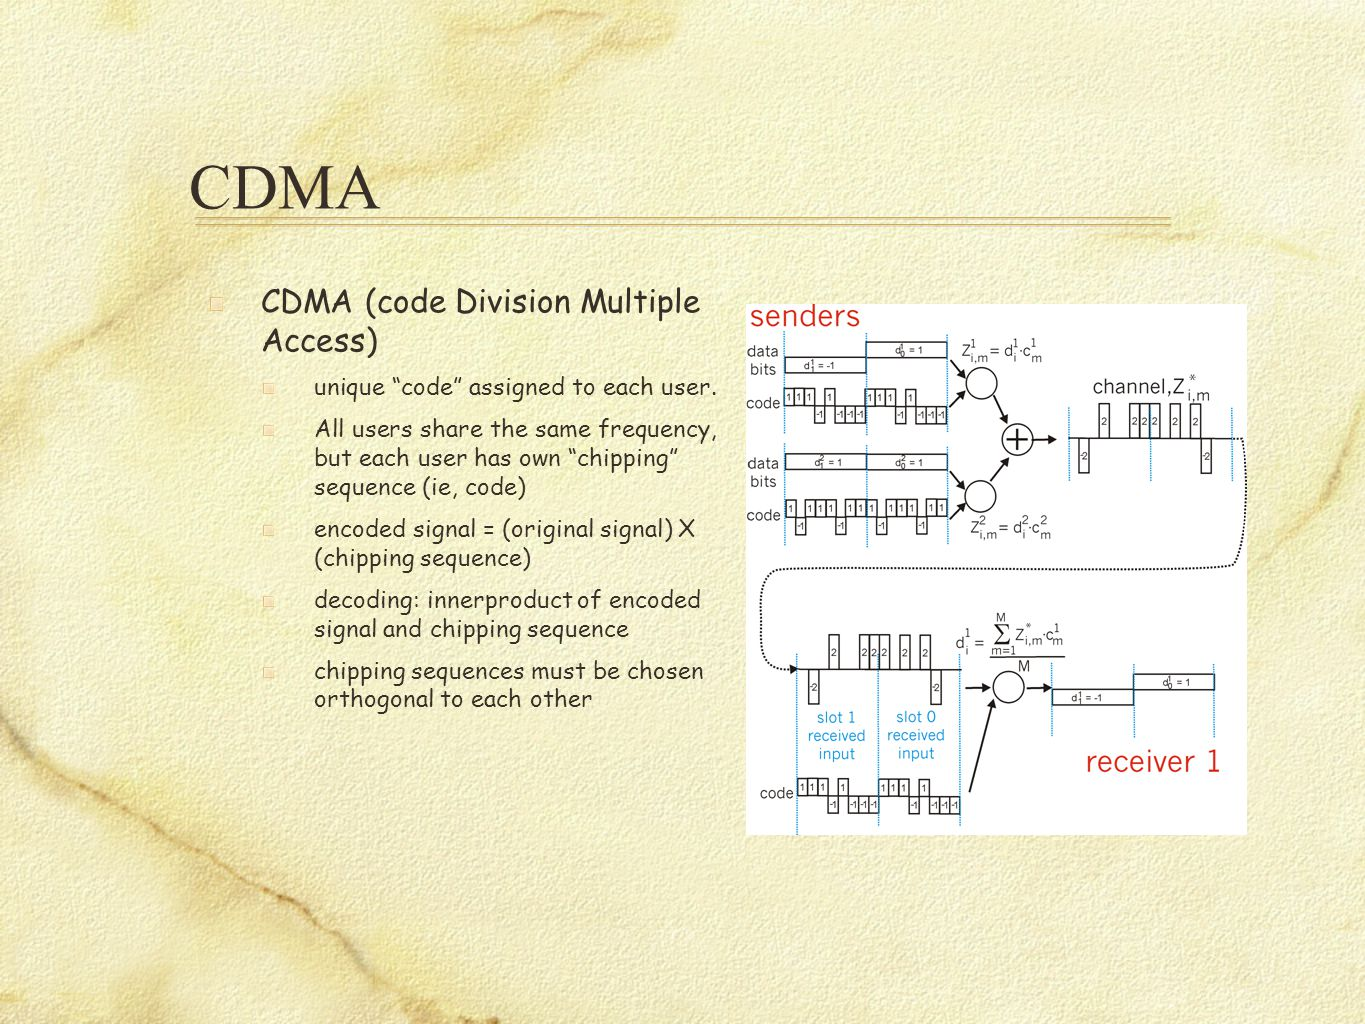 """CDMA CDMA (code Division Multiple Access) unique """"code"""" assigned to each user. All users share the same frequency, but each user has own """"chipping"""" se"""